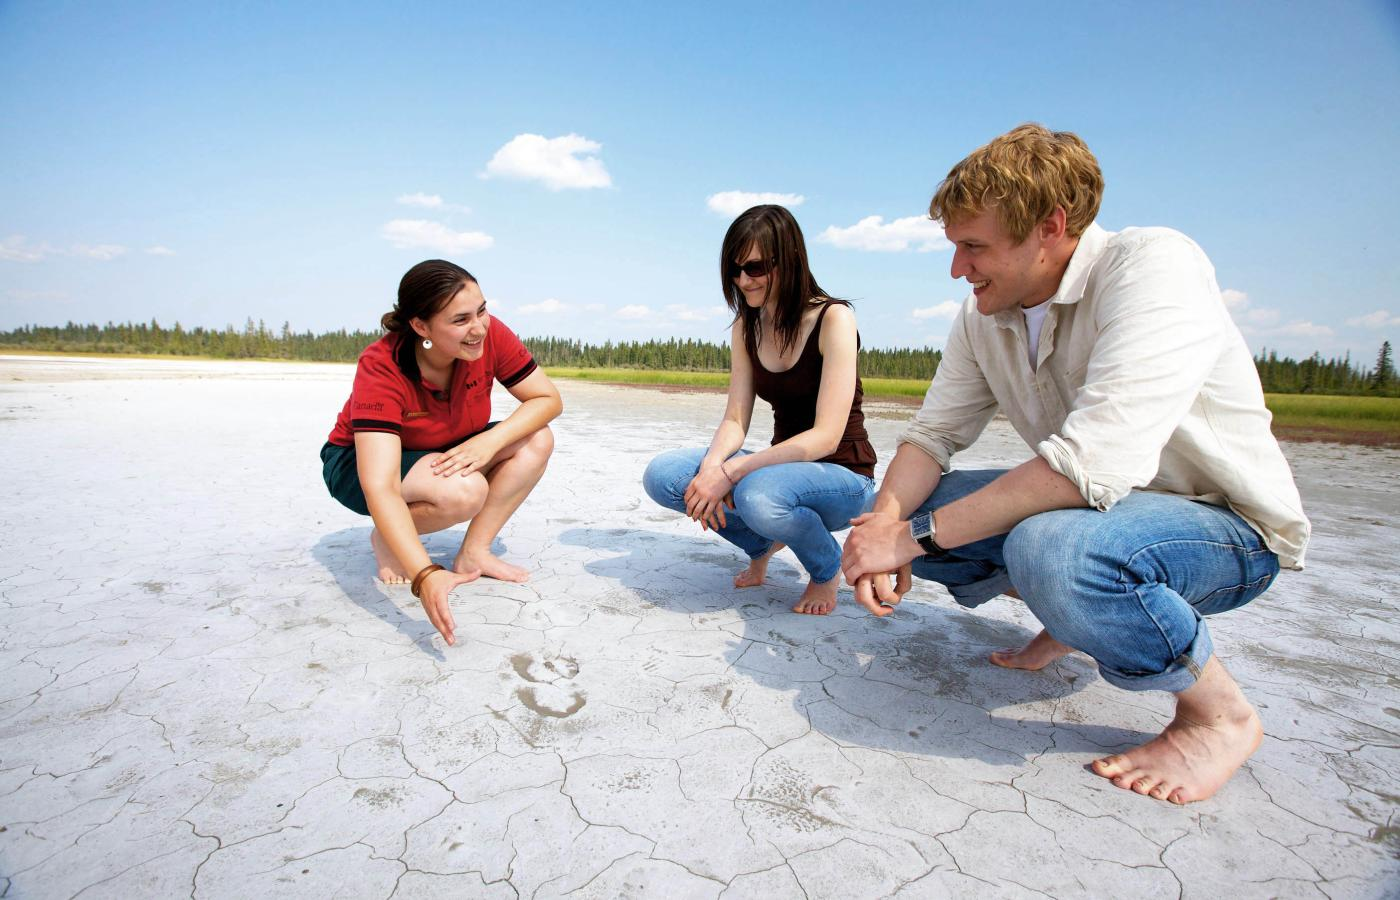 A Parks Canada staff examines the salt plains with two tourists